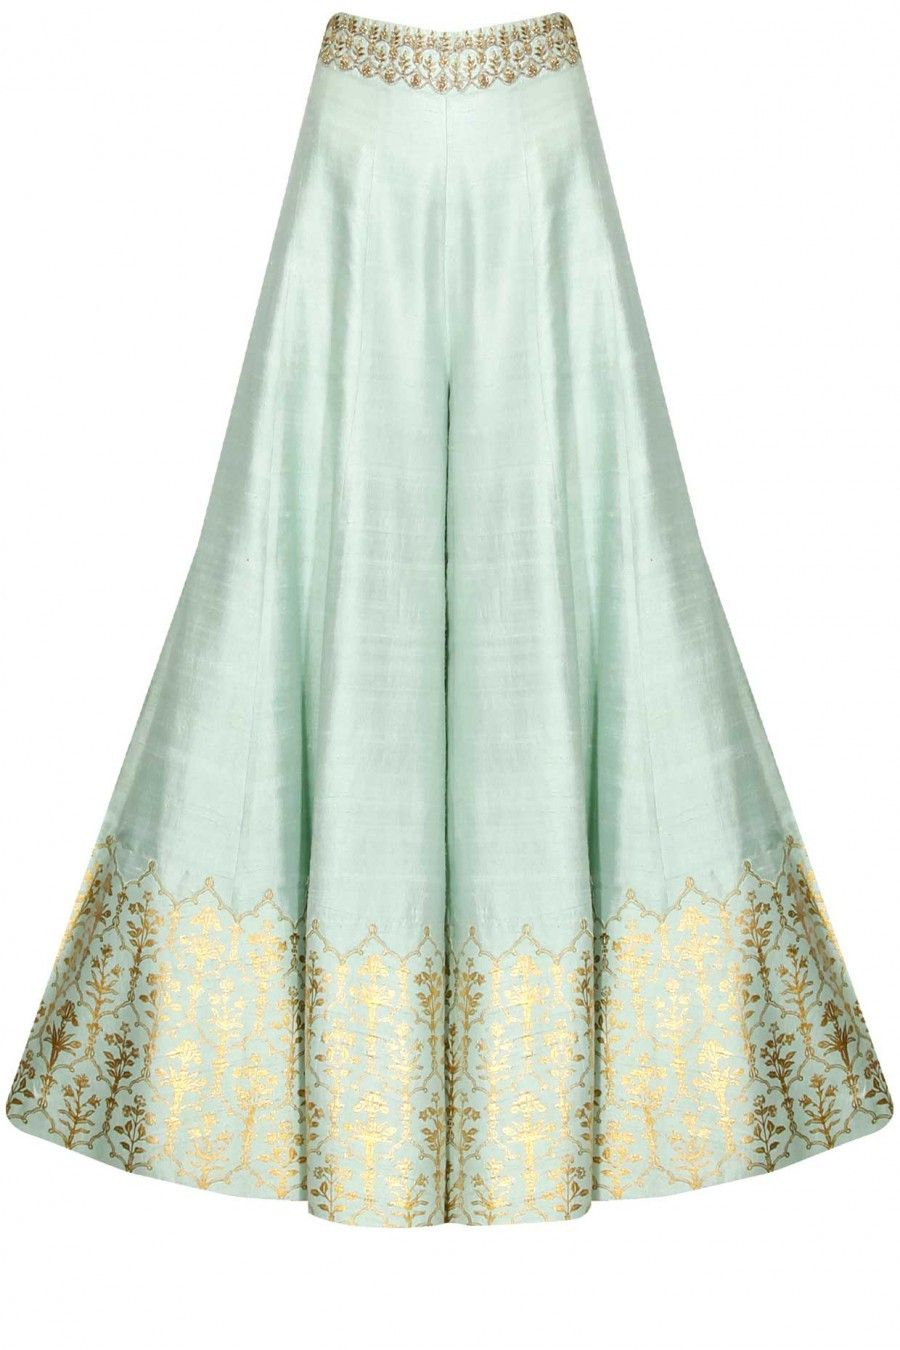 Mint Green Sharara Set In 2018 A South Asian 3 Pinterest Meitaviamp039s Kulot Denim Midi Culottes This Features Anarkali Kurta Dupion Base With White Yellow Flowers Embroidery On The Yoke Sleeves Of